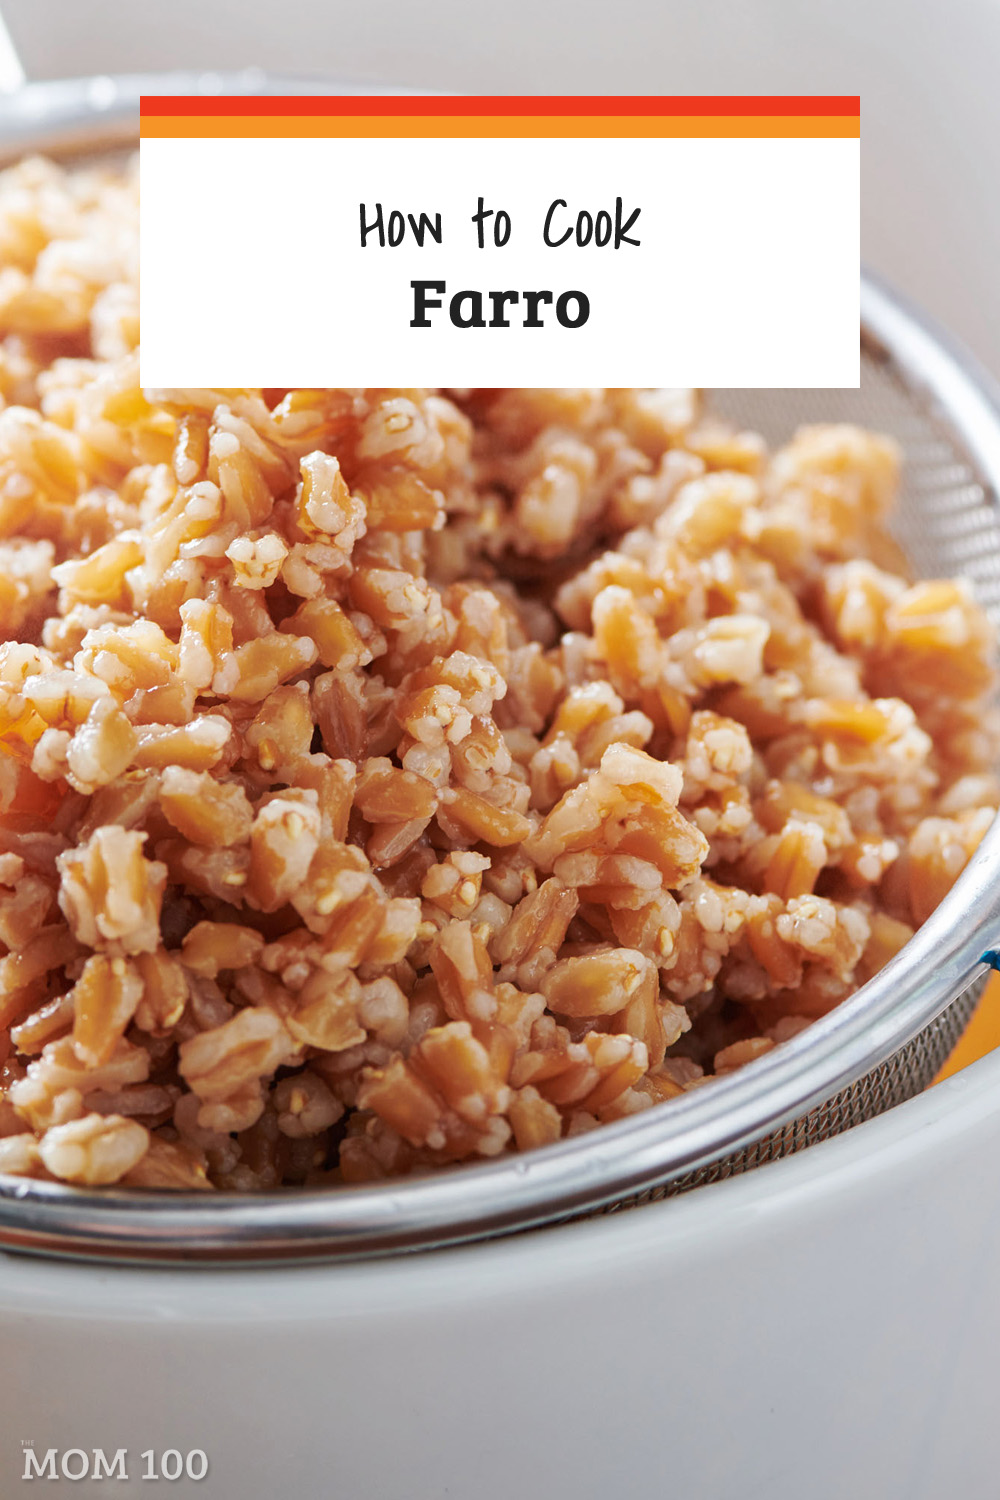 Farro is an amazing chewy, delicious ancient grain and here is what you need to know to cook it perfectly (it\'s as easy as cooking pasta)!